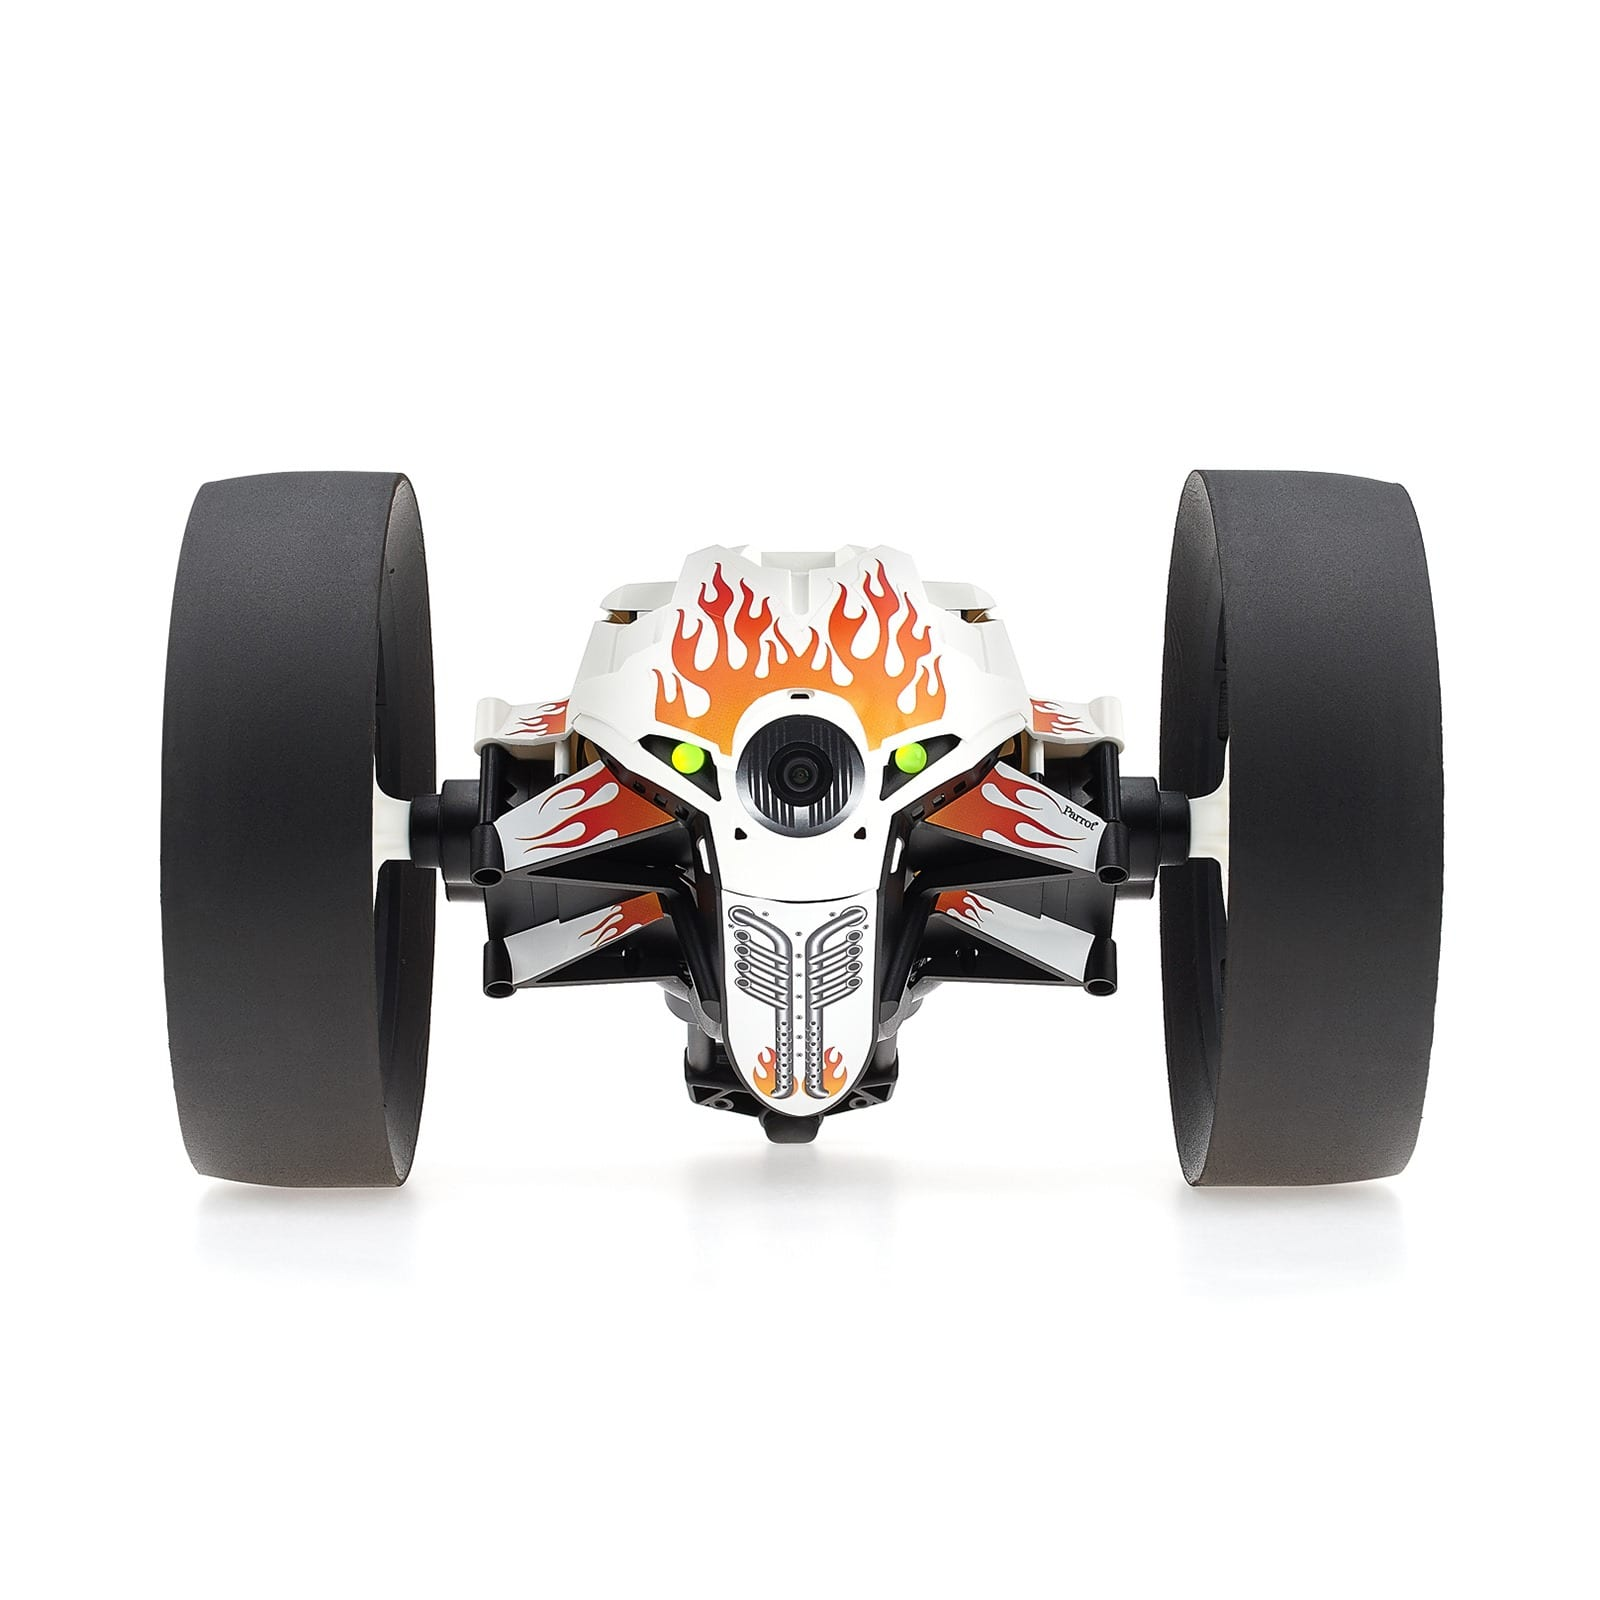 Parrot Jumping Race Mini Drone Wi-Fi Controlled RC Vehicle w/ Camera & Speaker (77% off) $34.99